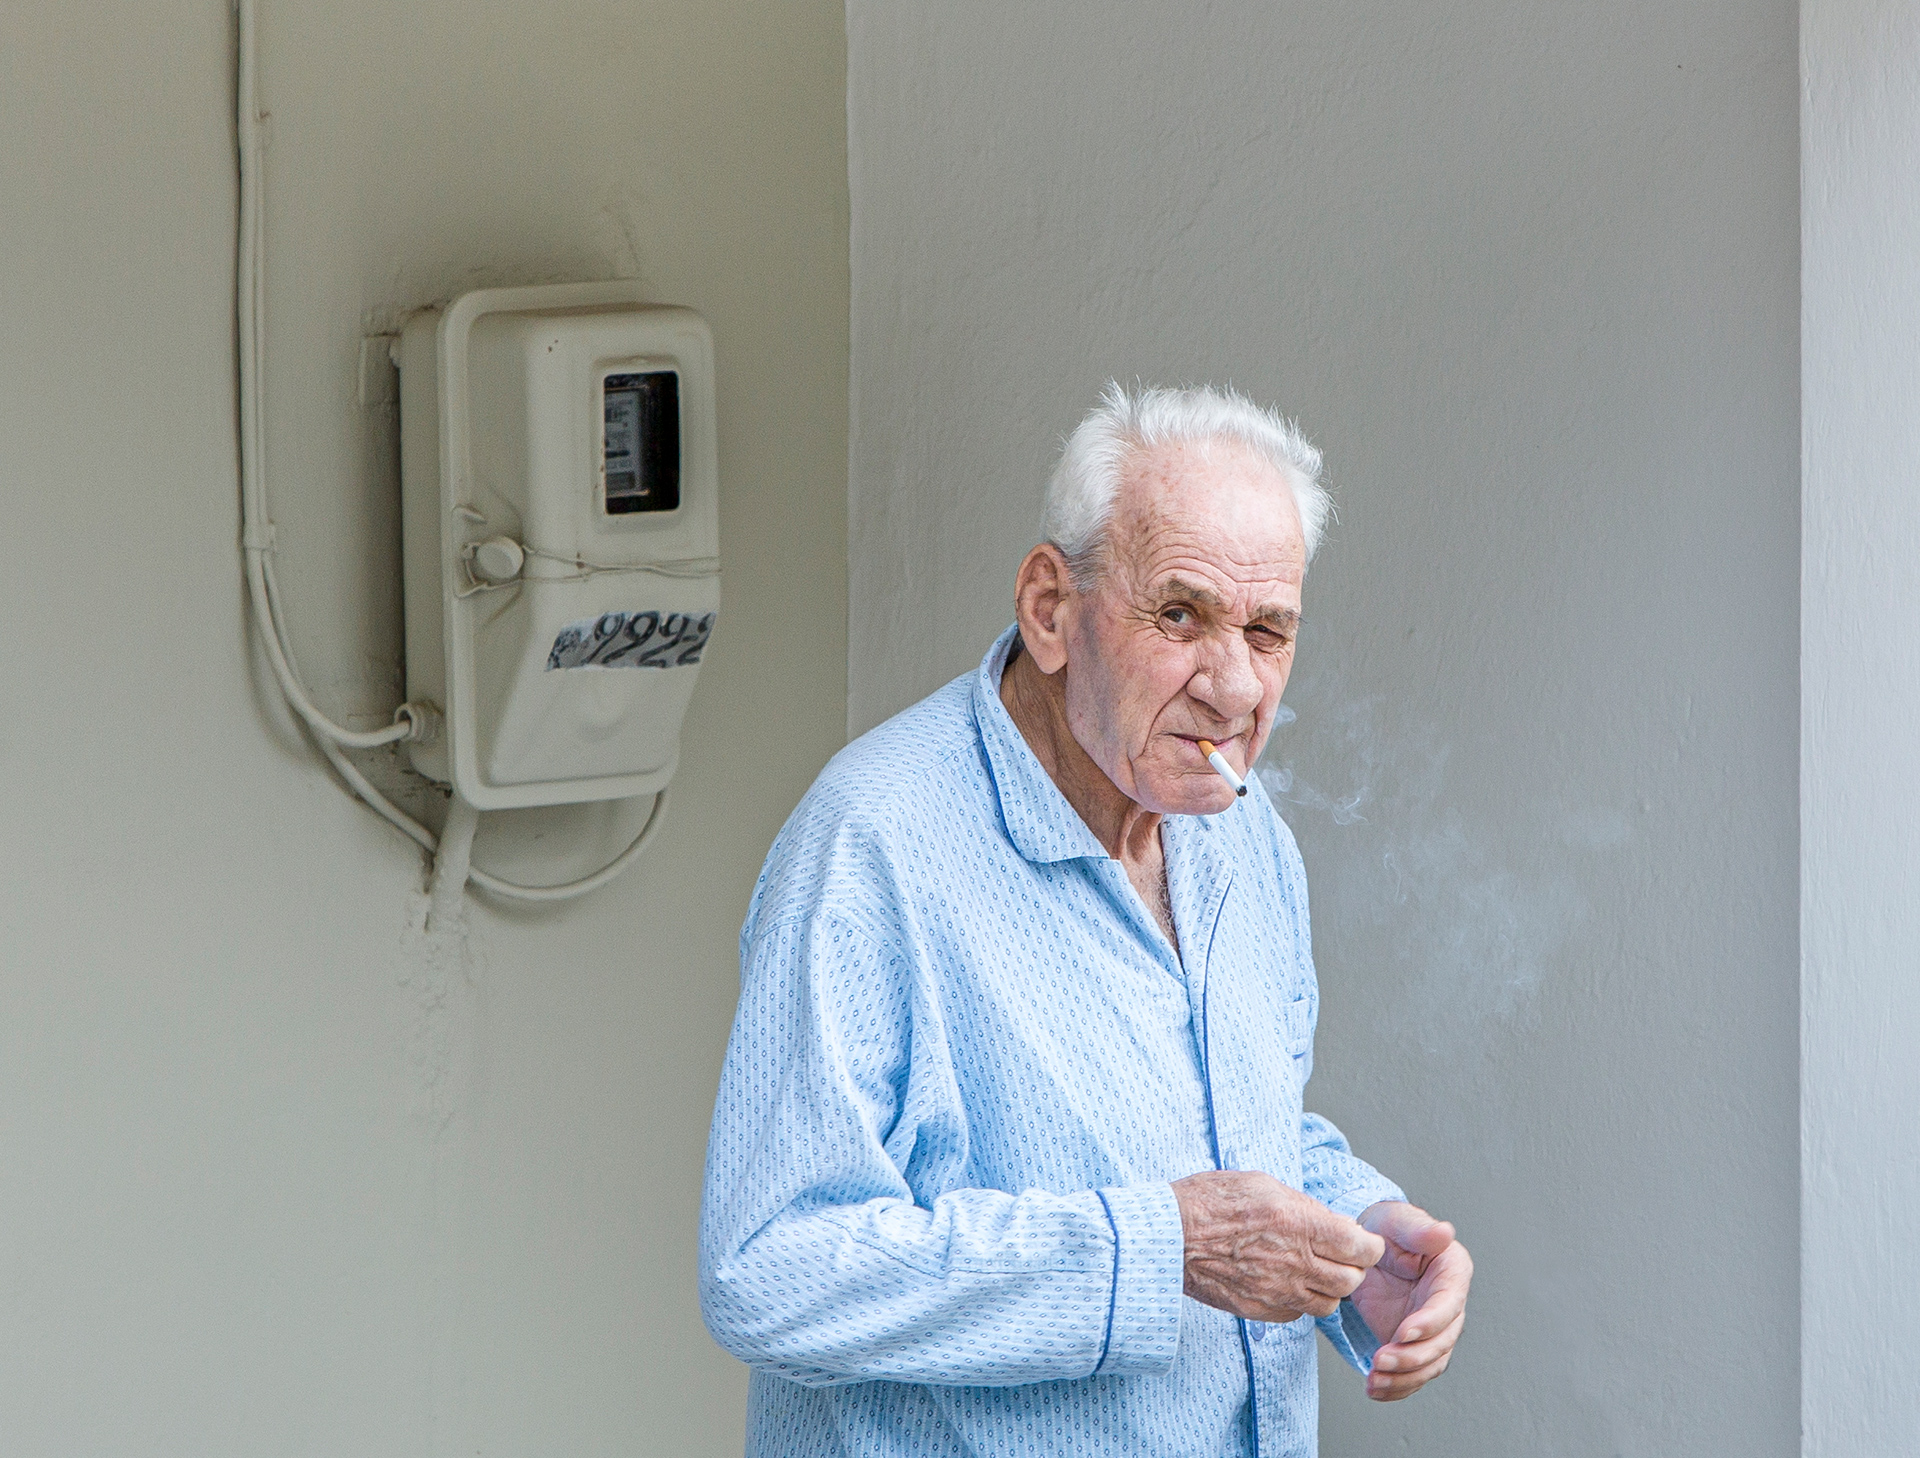 Smoker, Greece, Loutraki, old man, smoking, suspect, suspecting